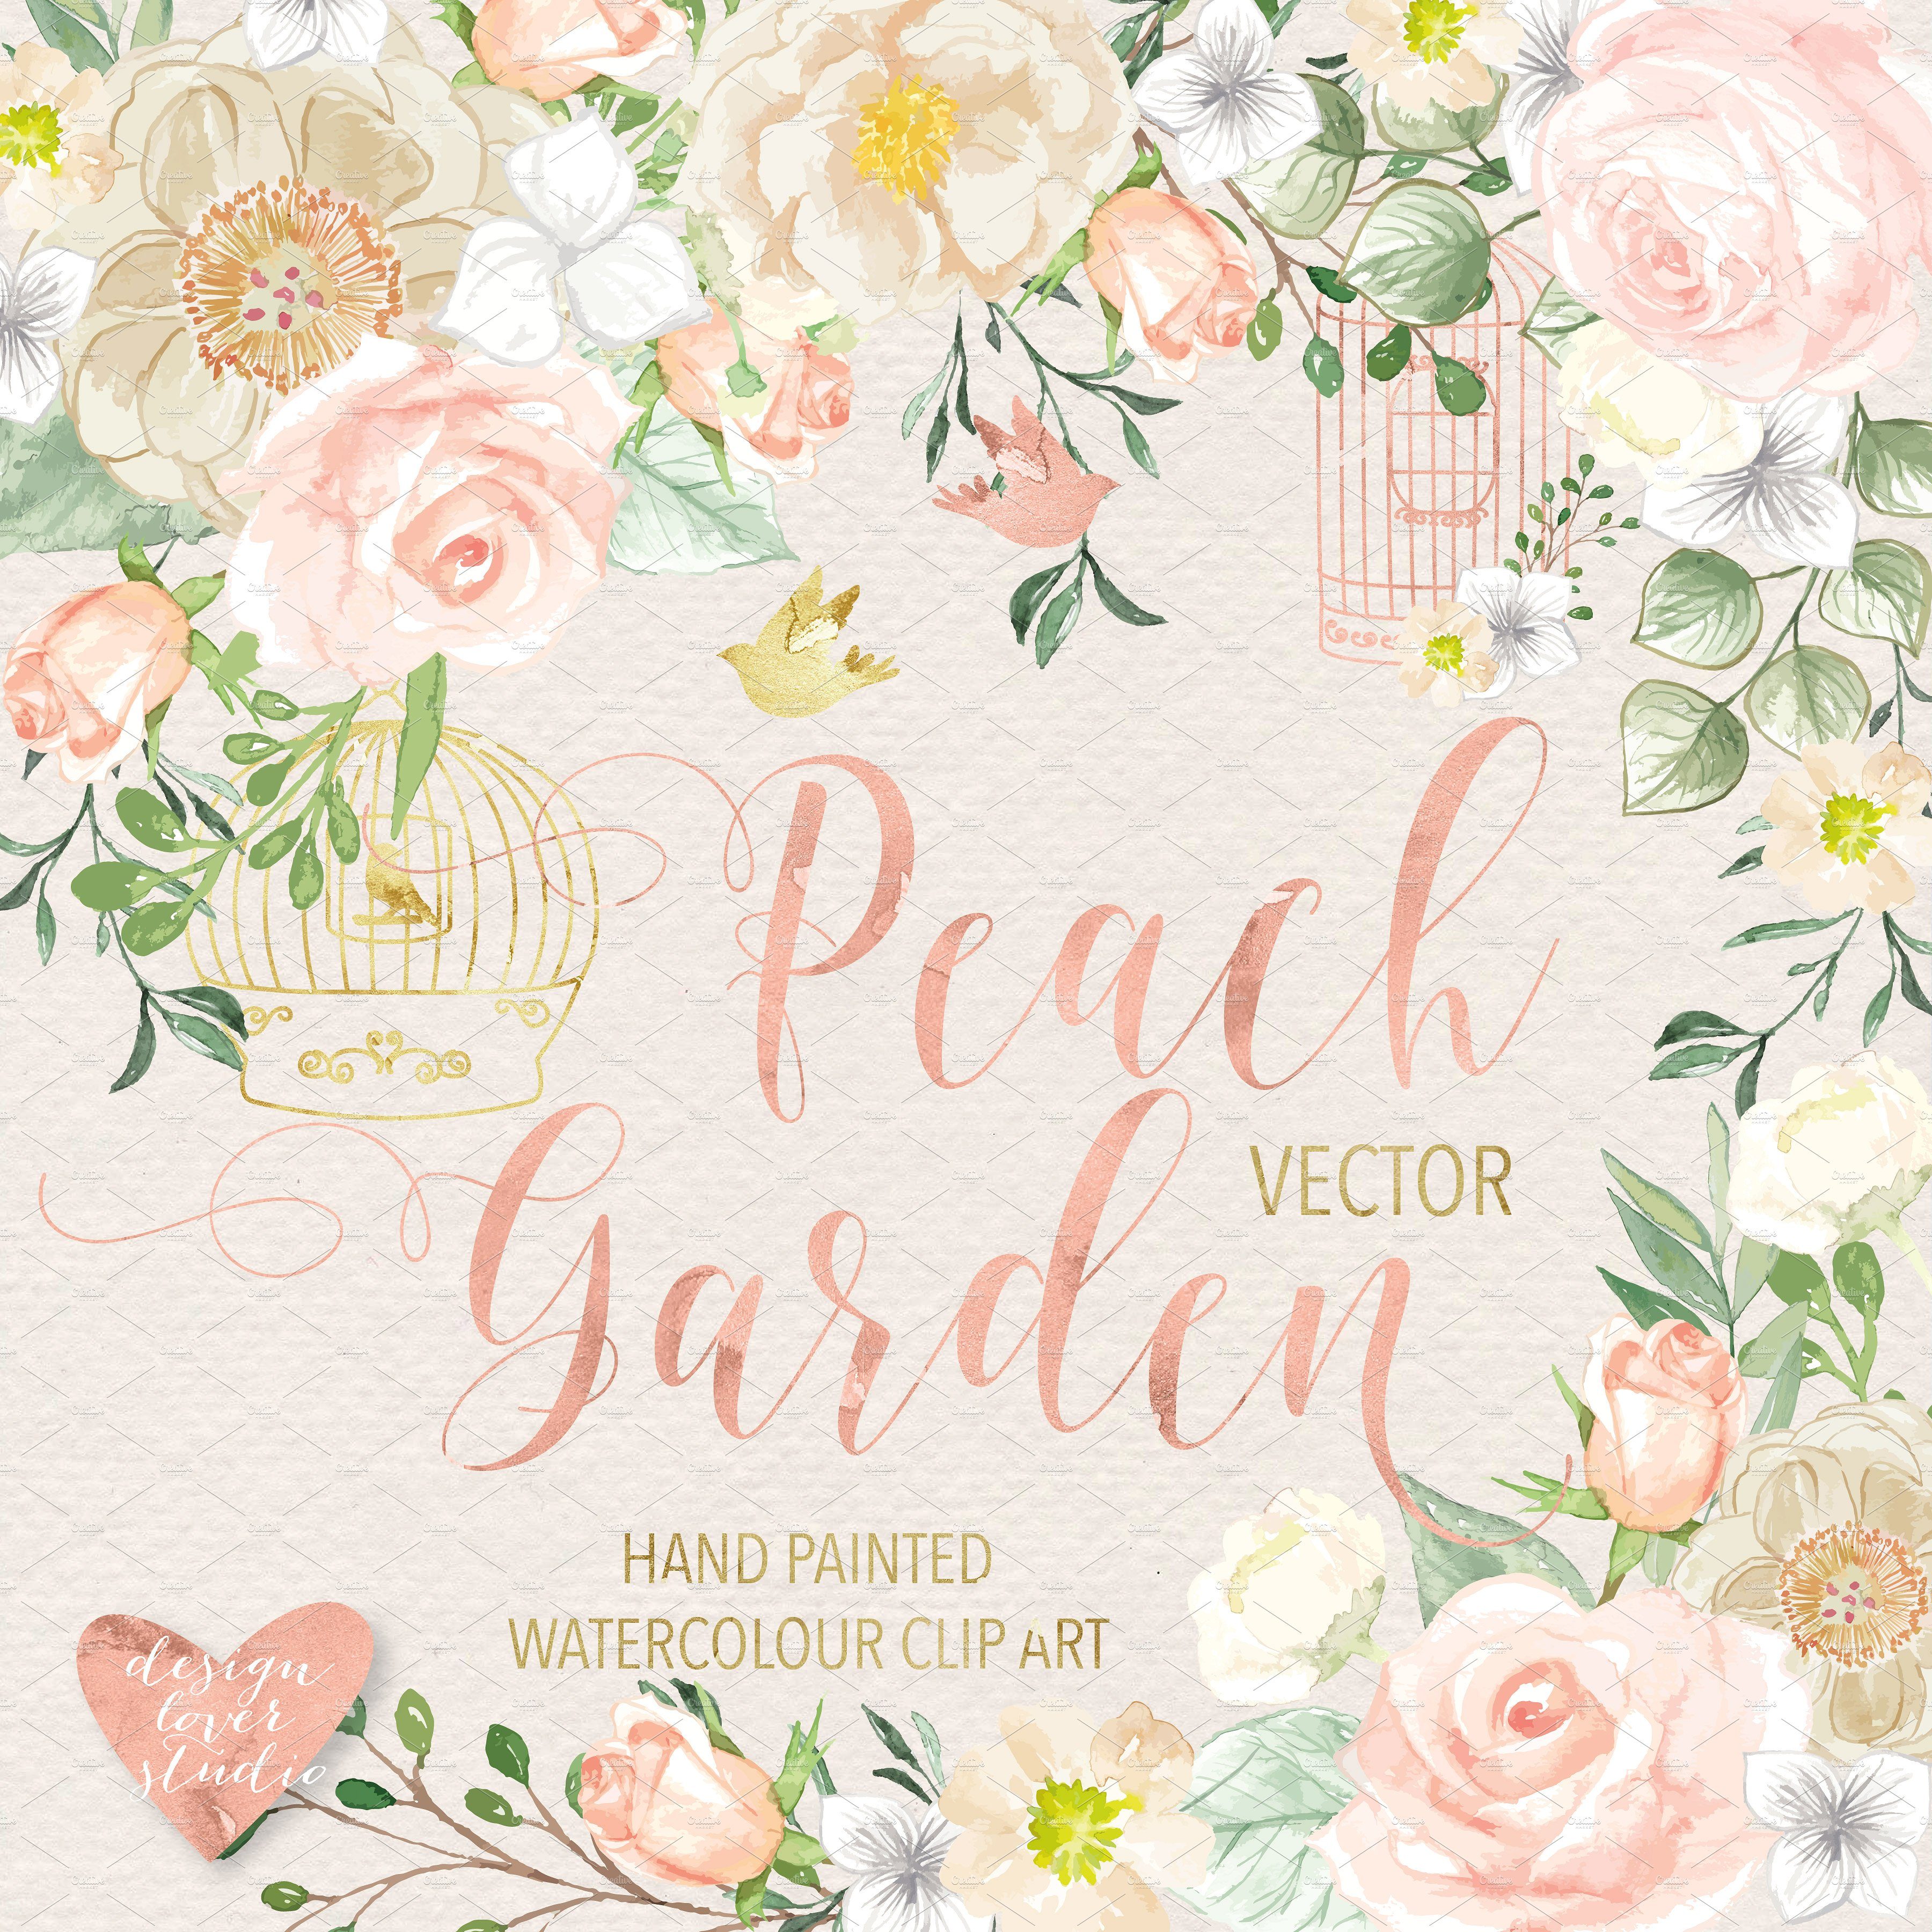 Peach Flower clipart #2, Download drawings